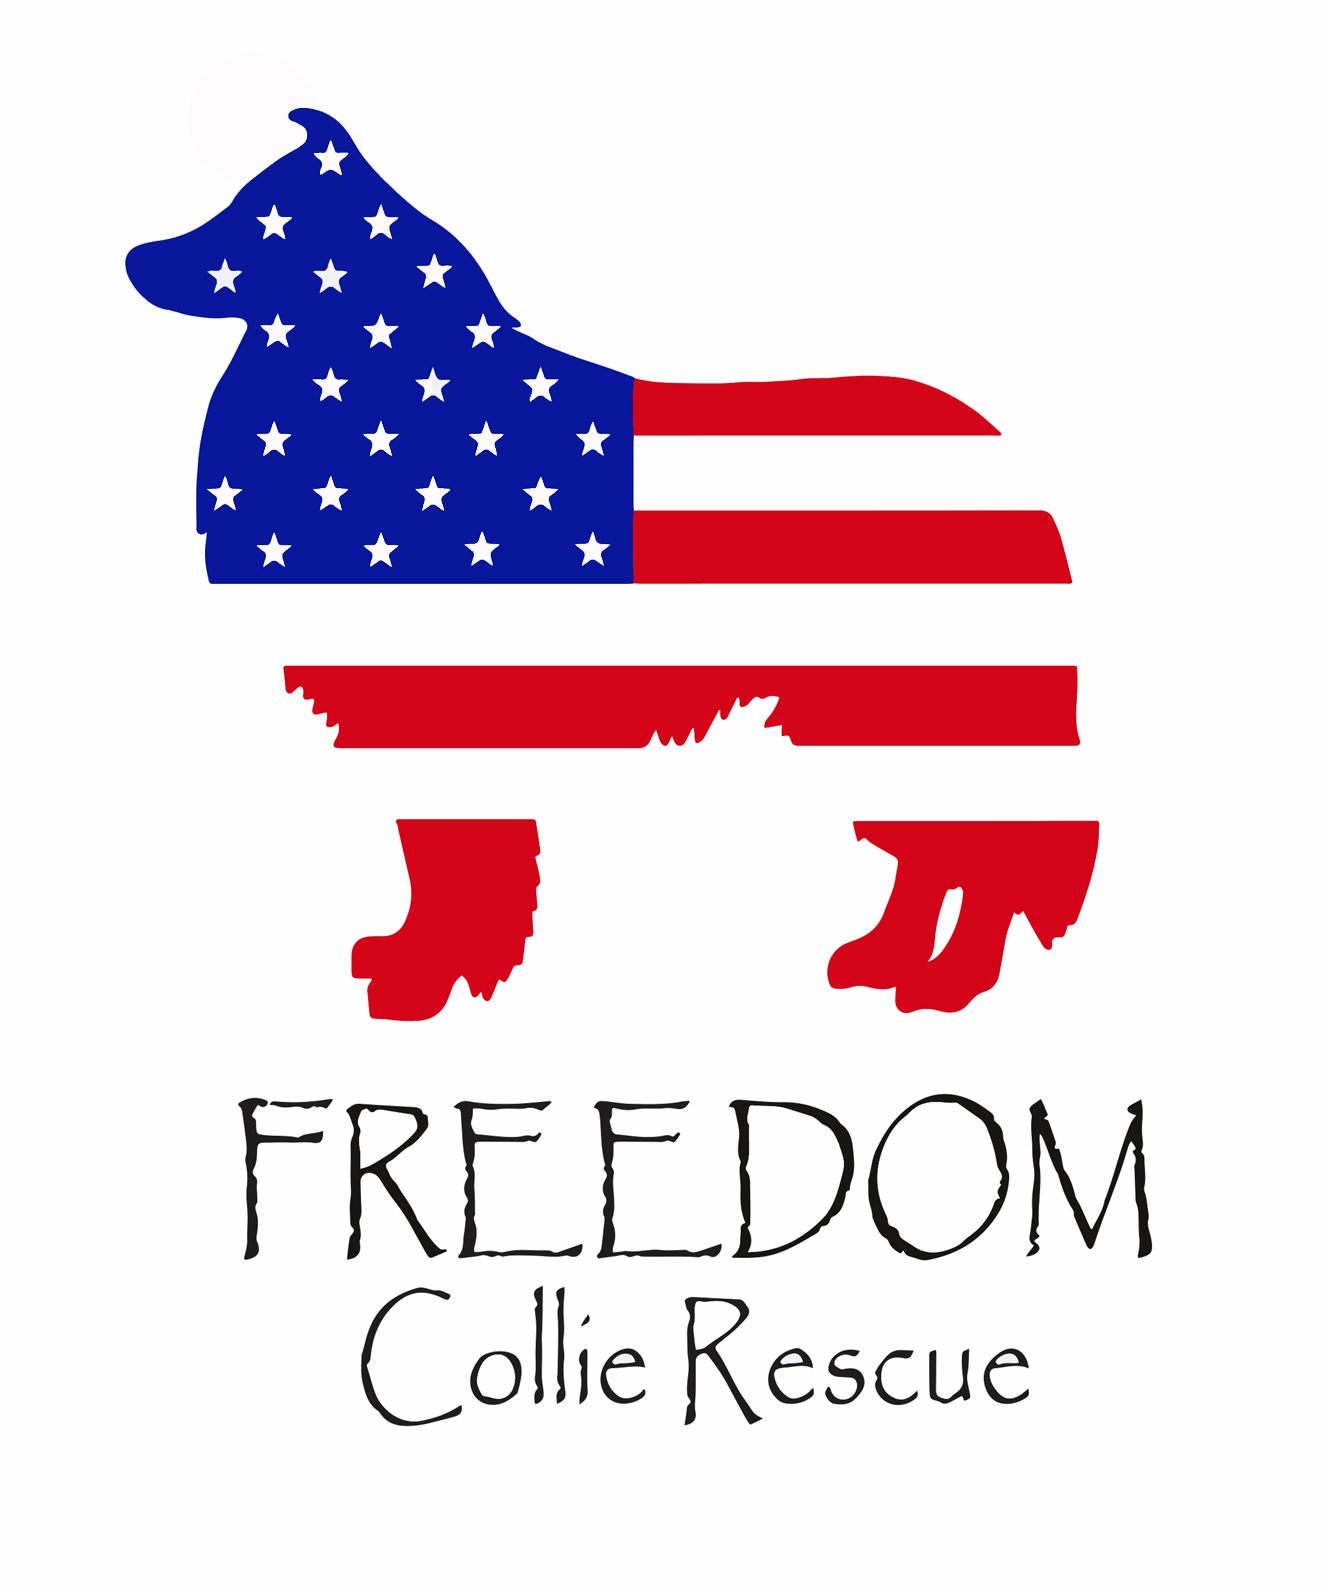 Freedom Collie Rescue